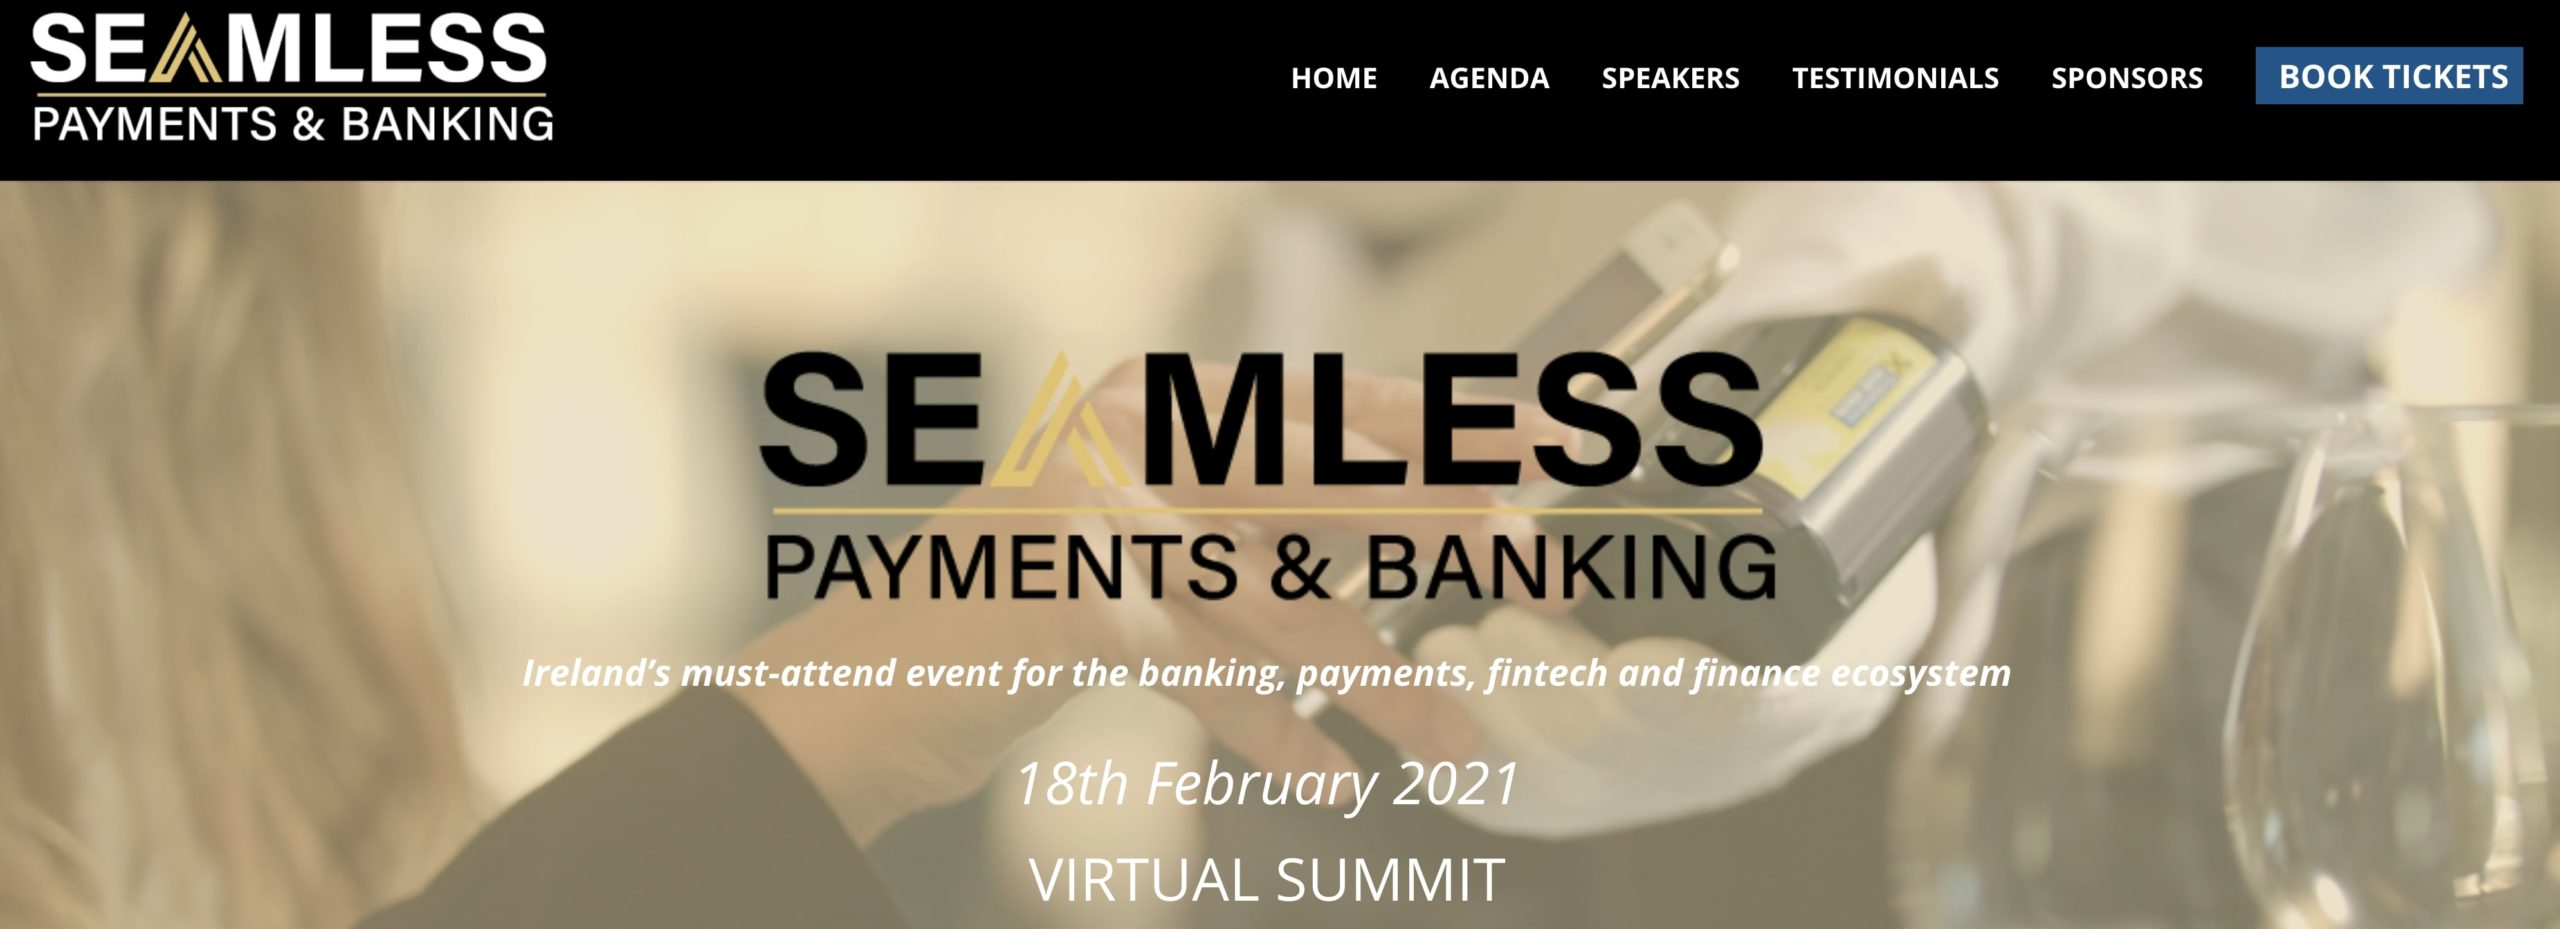 Seamless Payments And Banking